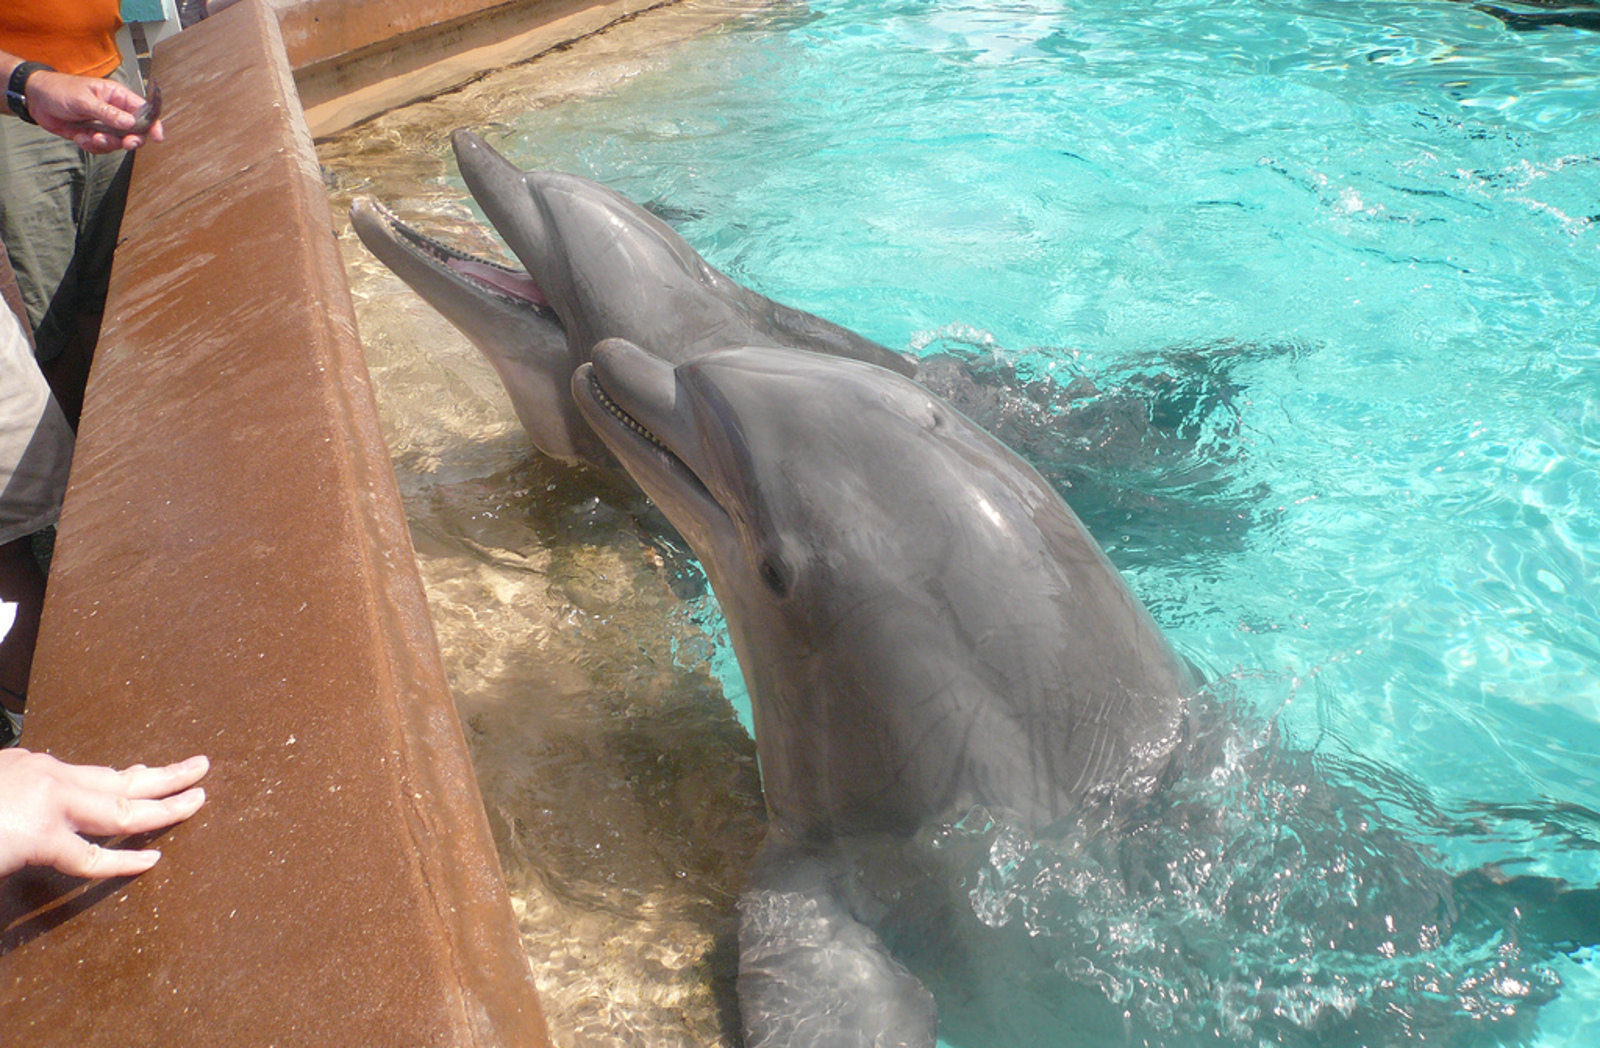 Do Dolphins Have Healing Abilities, or is Dolphin Therapy Just Another Guise for the Captivity Industry?